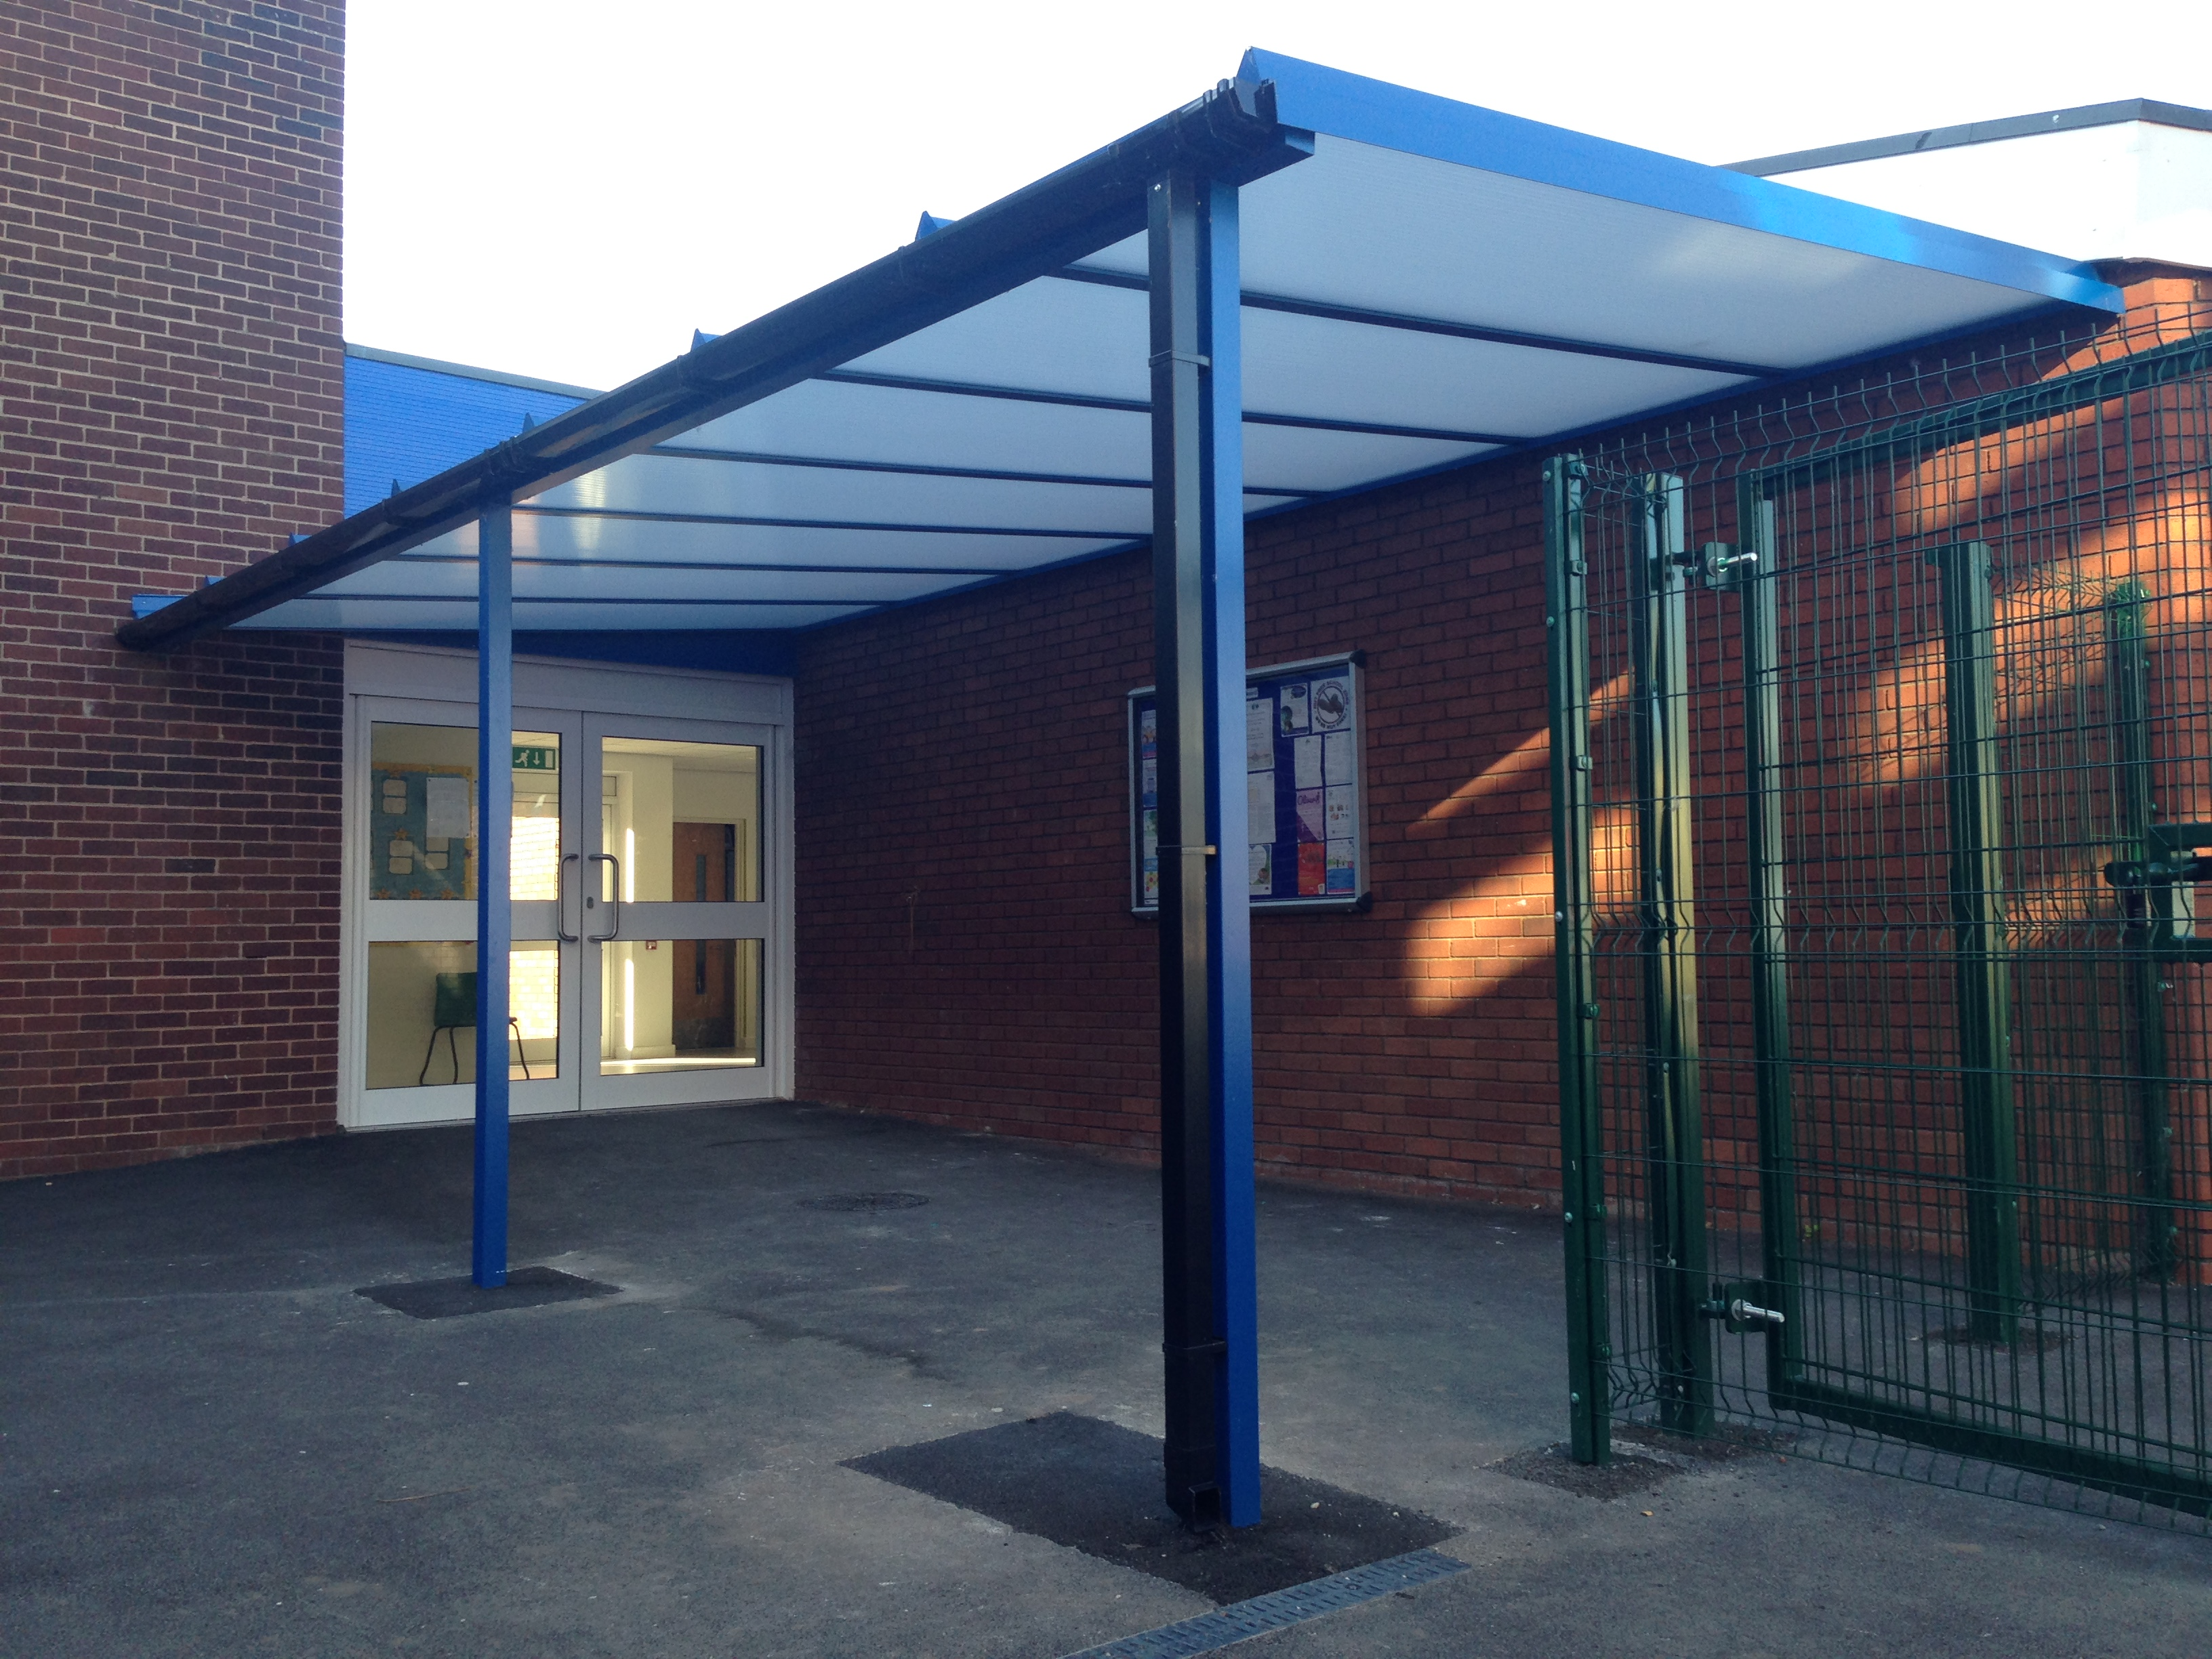 The second small entrance canopy requested by the Headteacher (Phase 2)